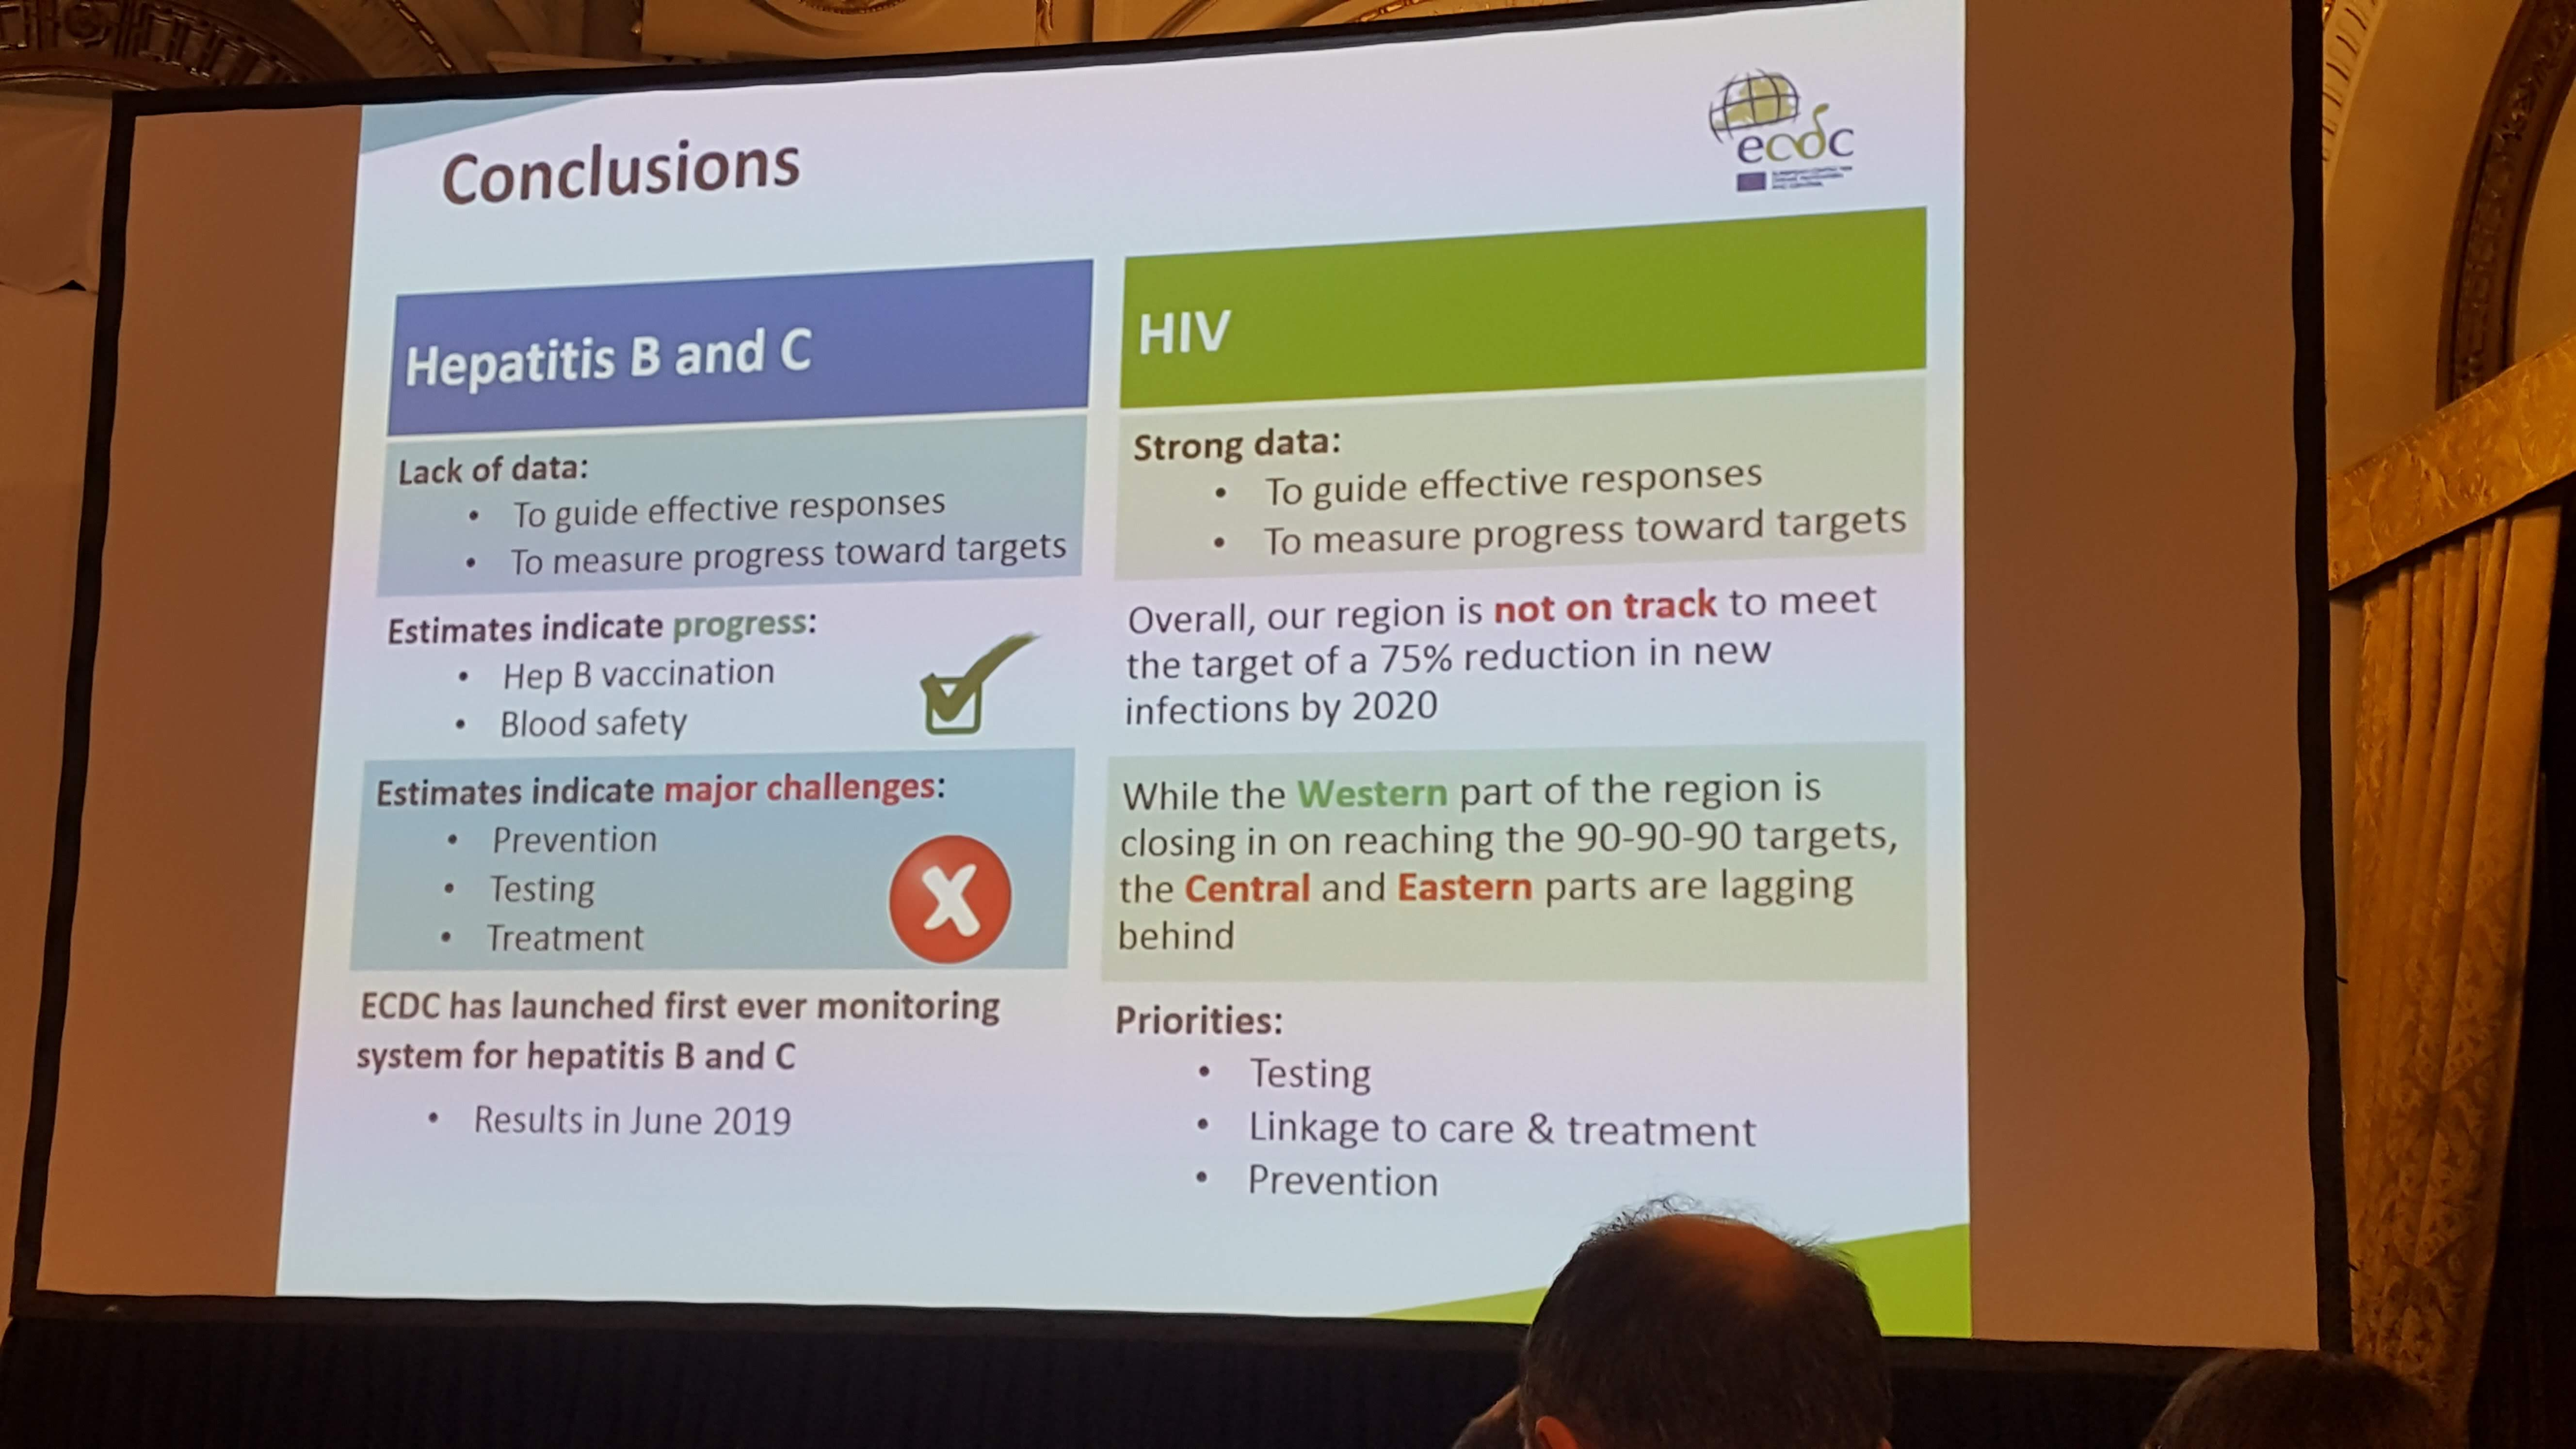 Conclusions for Hepatitis B and C and HIV, HepHIV2019